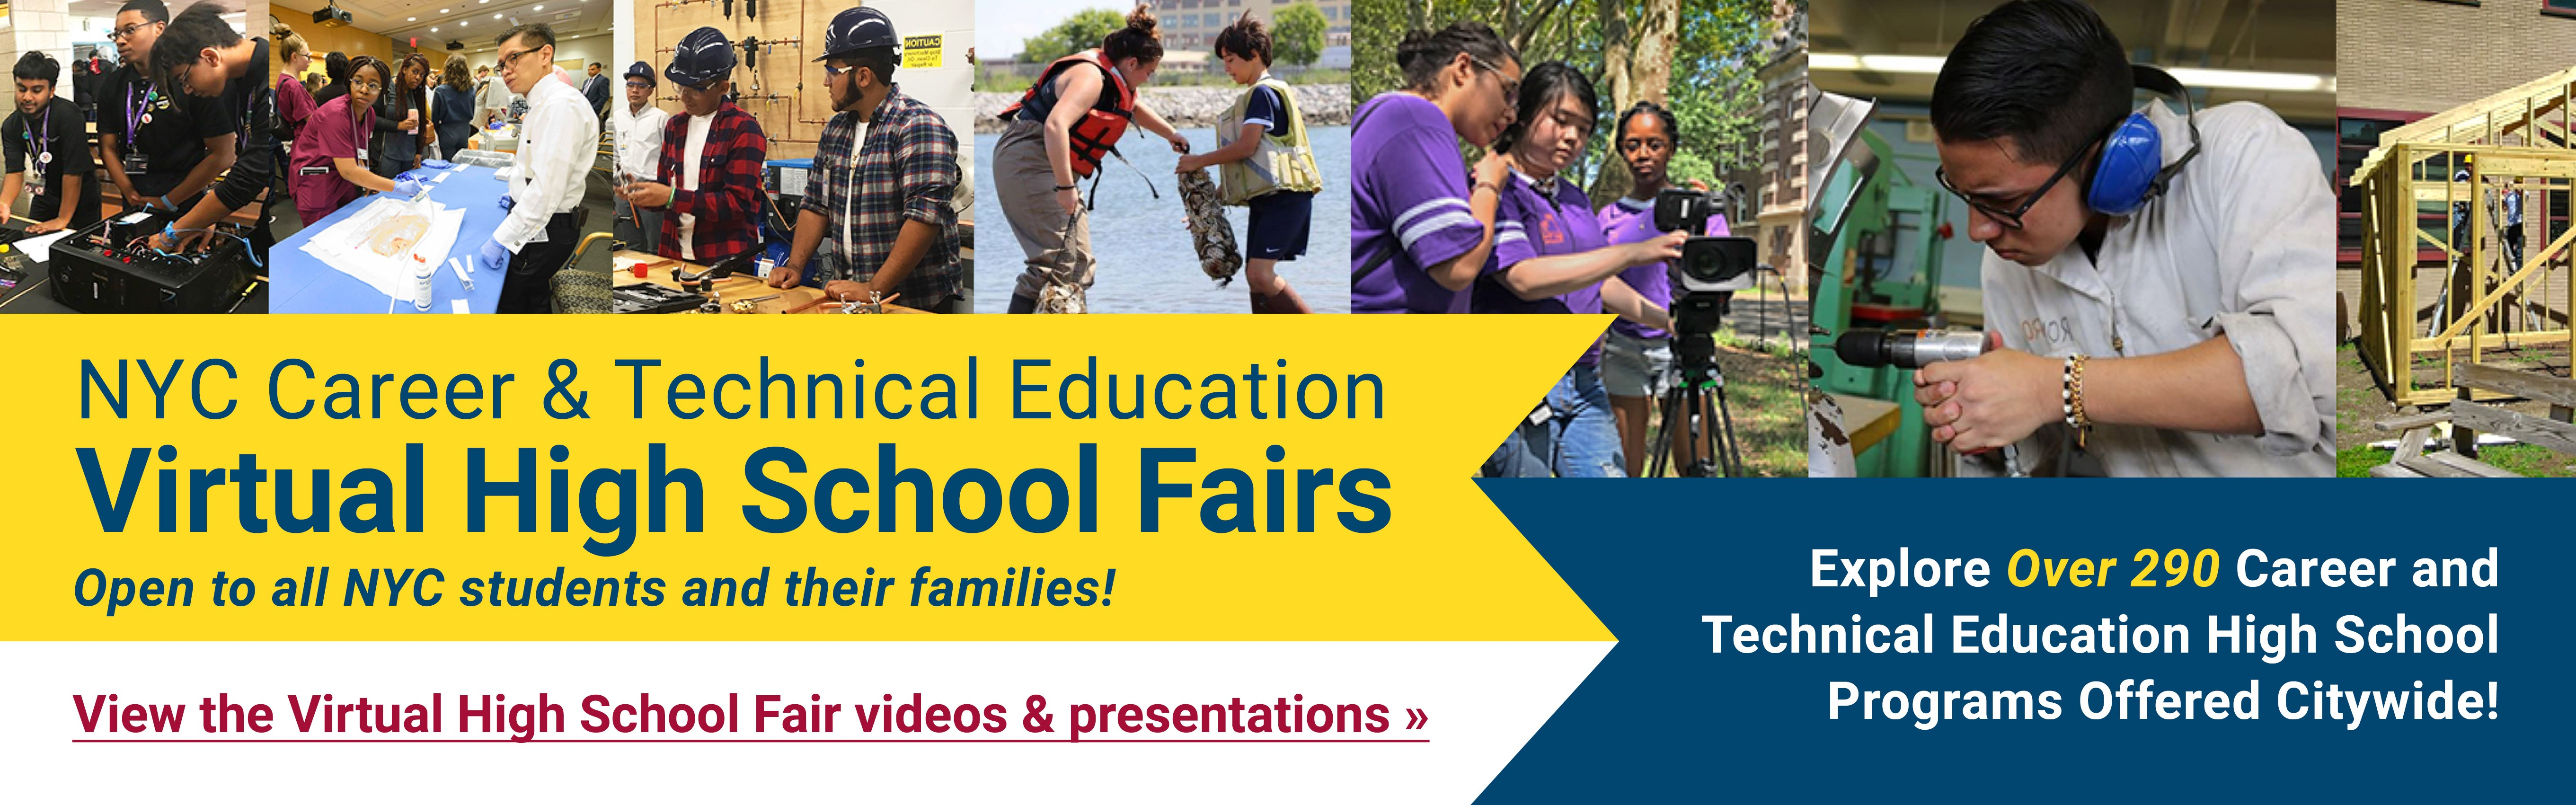 View the Virtual High School Fair videos and presentations!